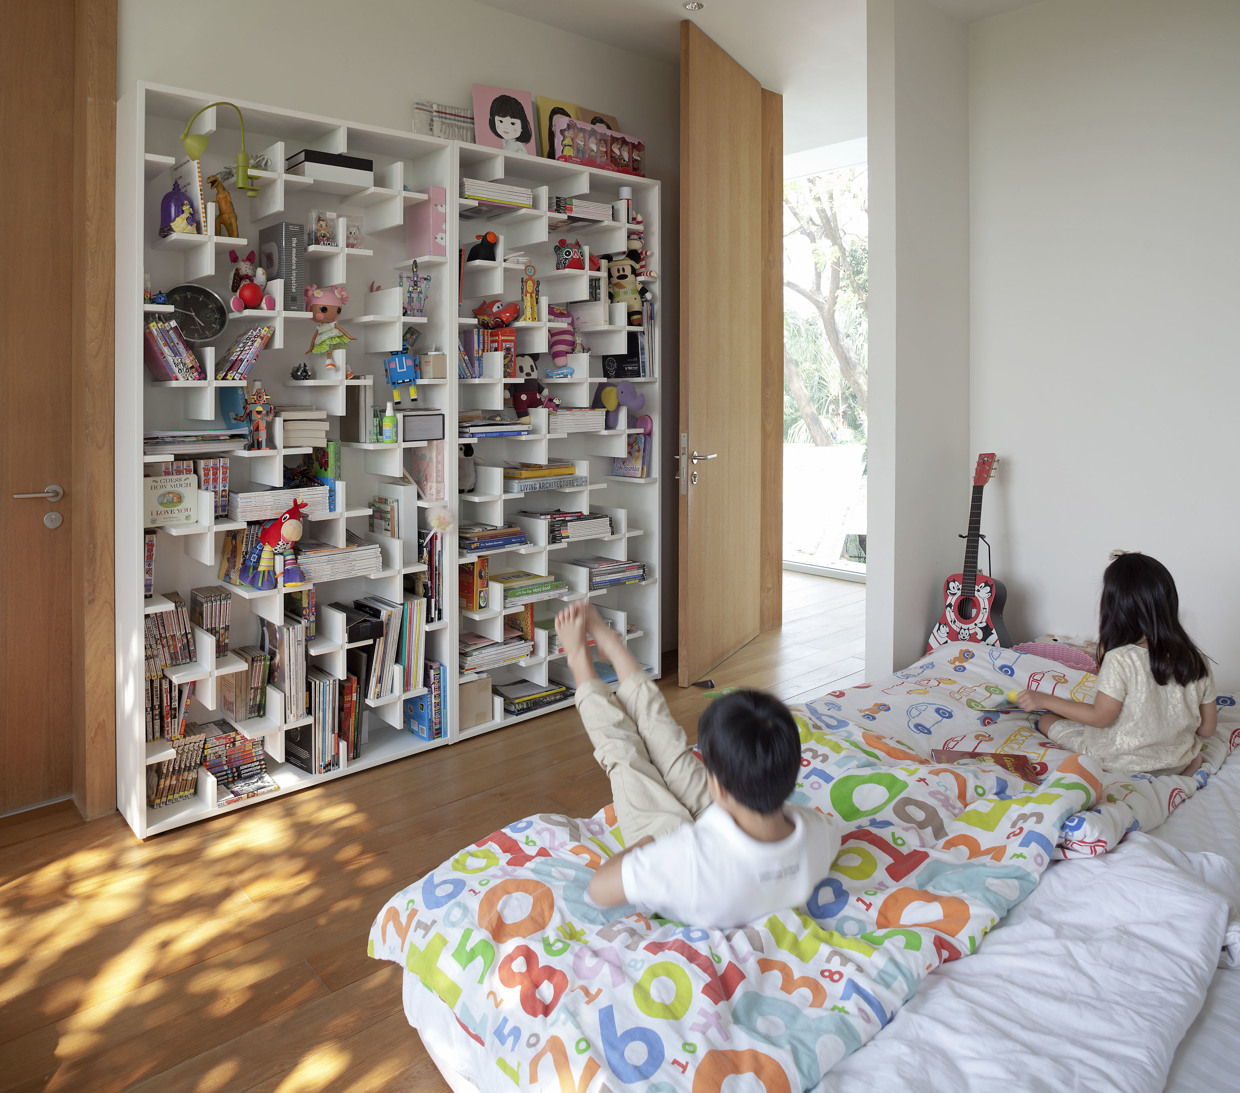 Creative kids room interior design ideas Creative interior design